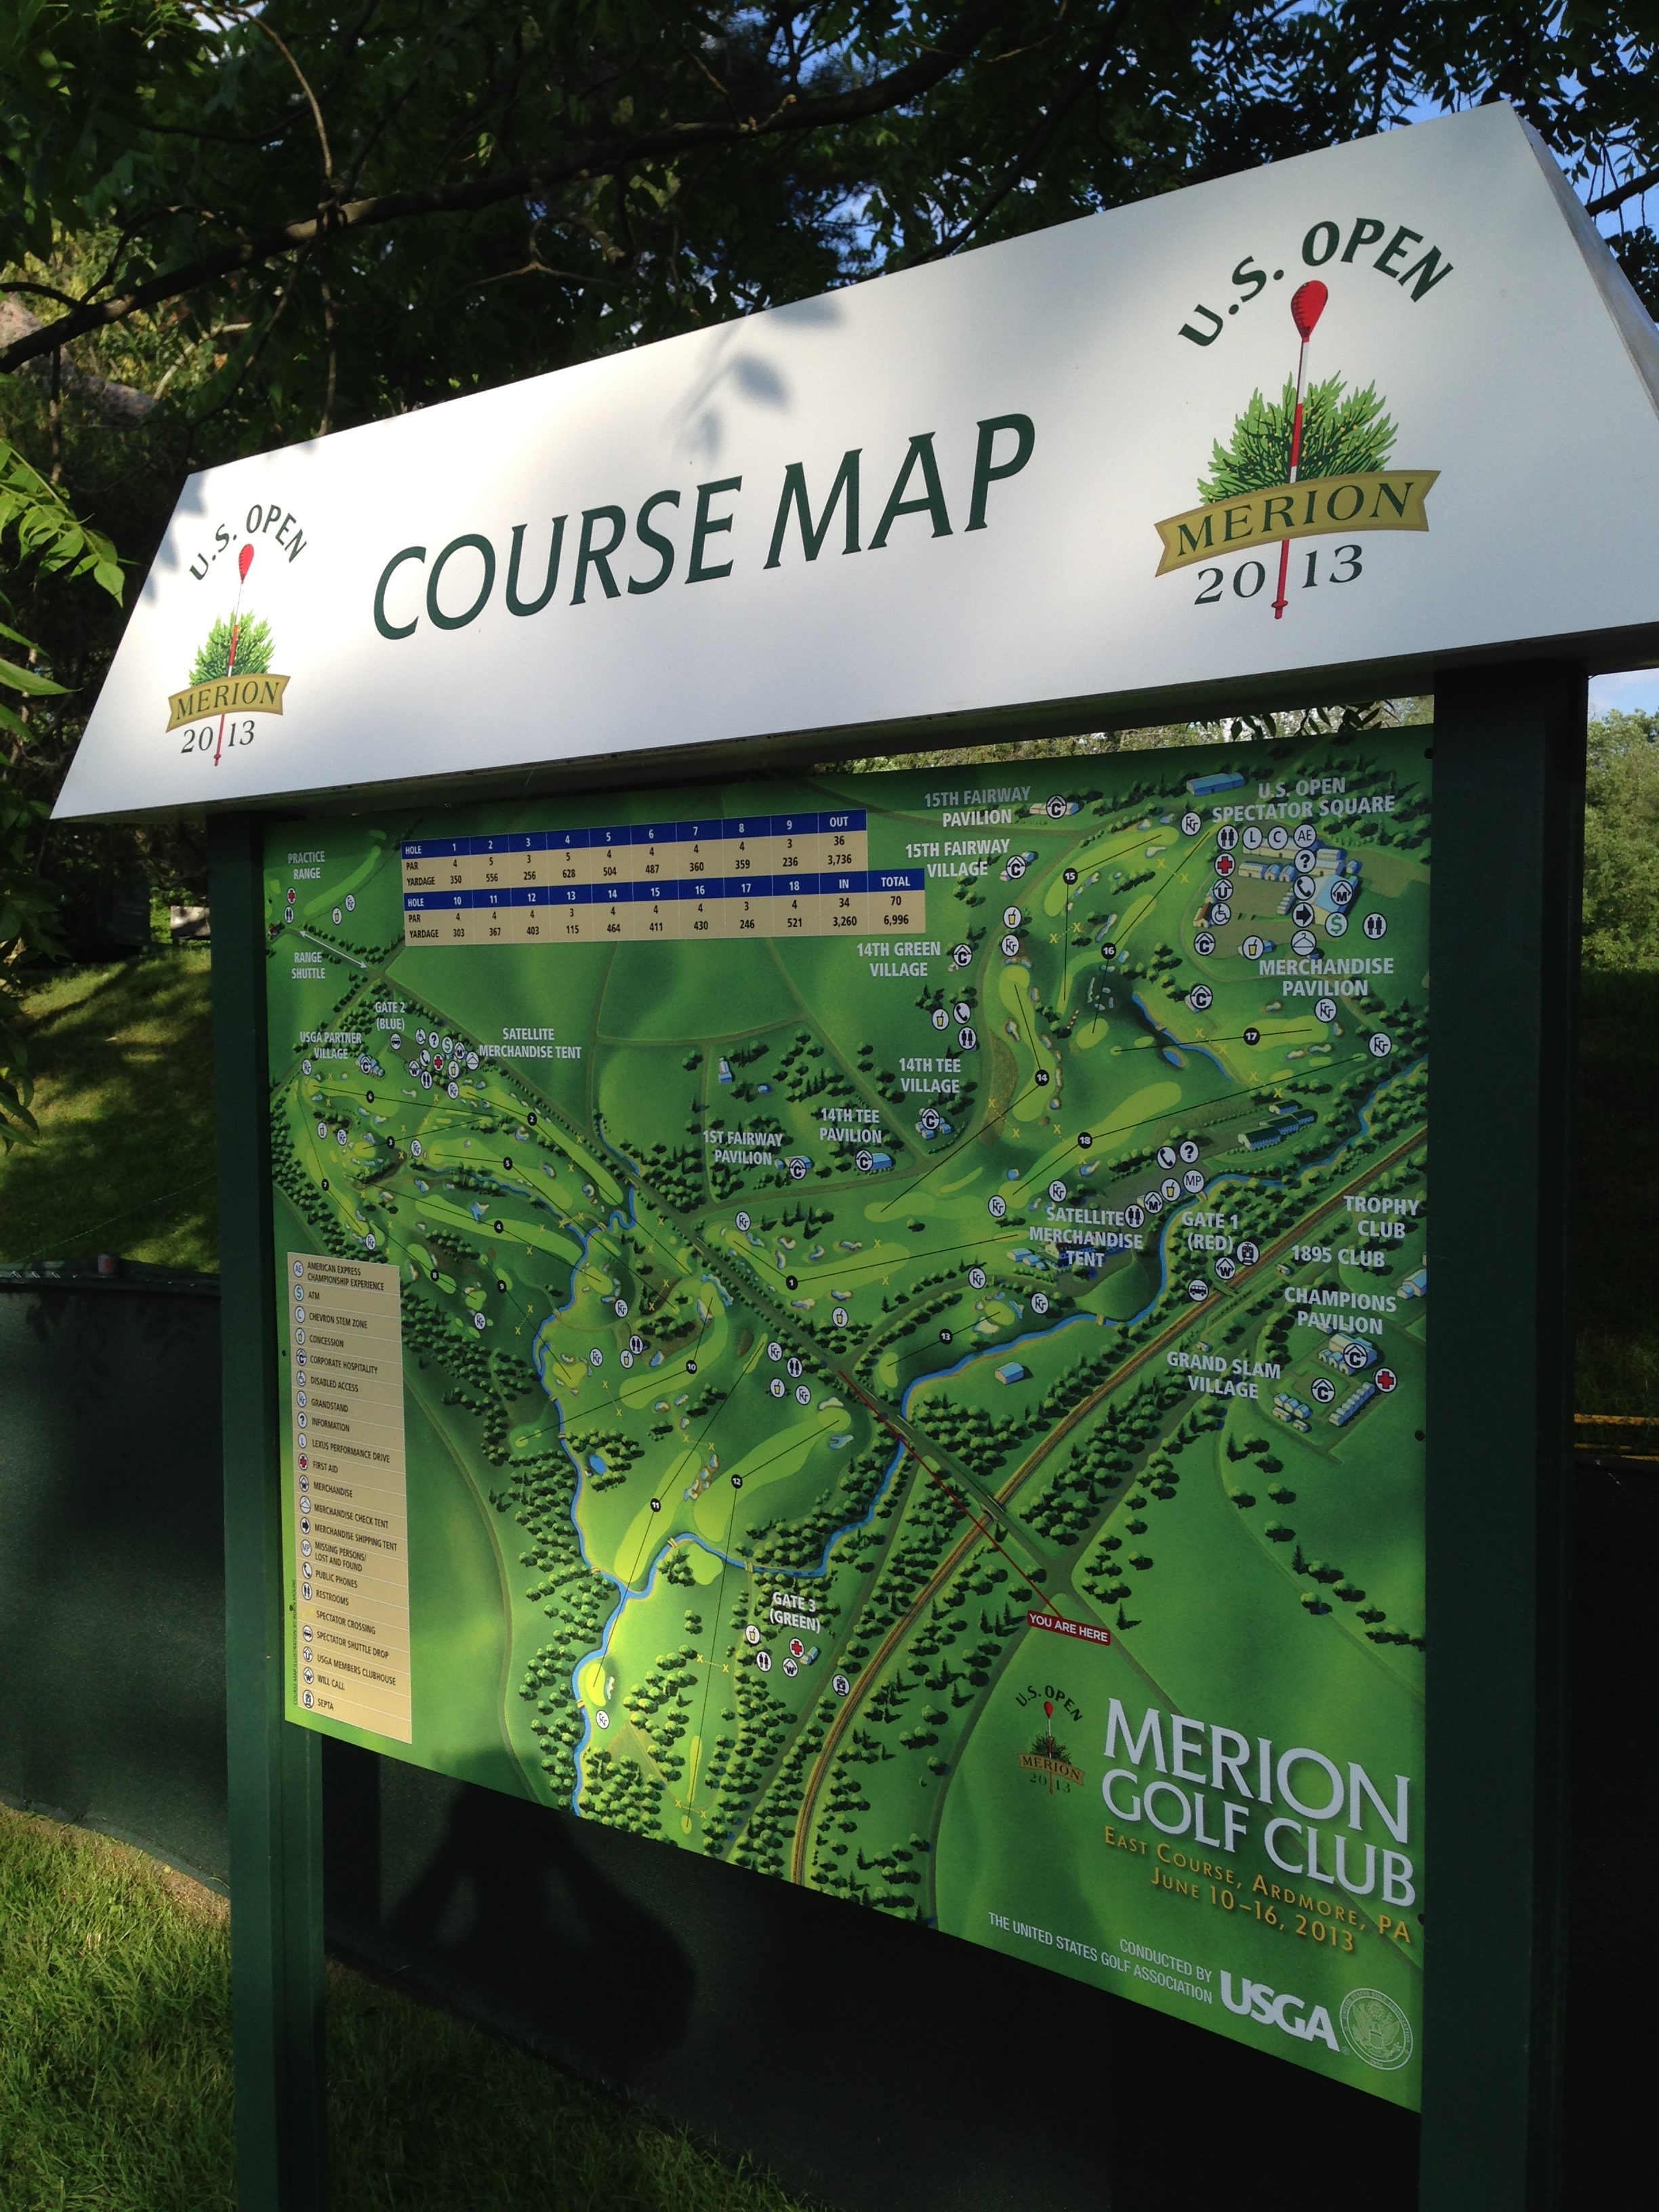 Merion Golf Club US Open - Us Open Course Map